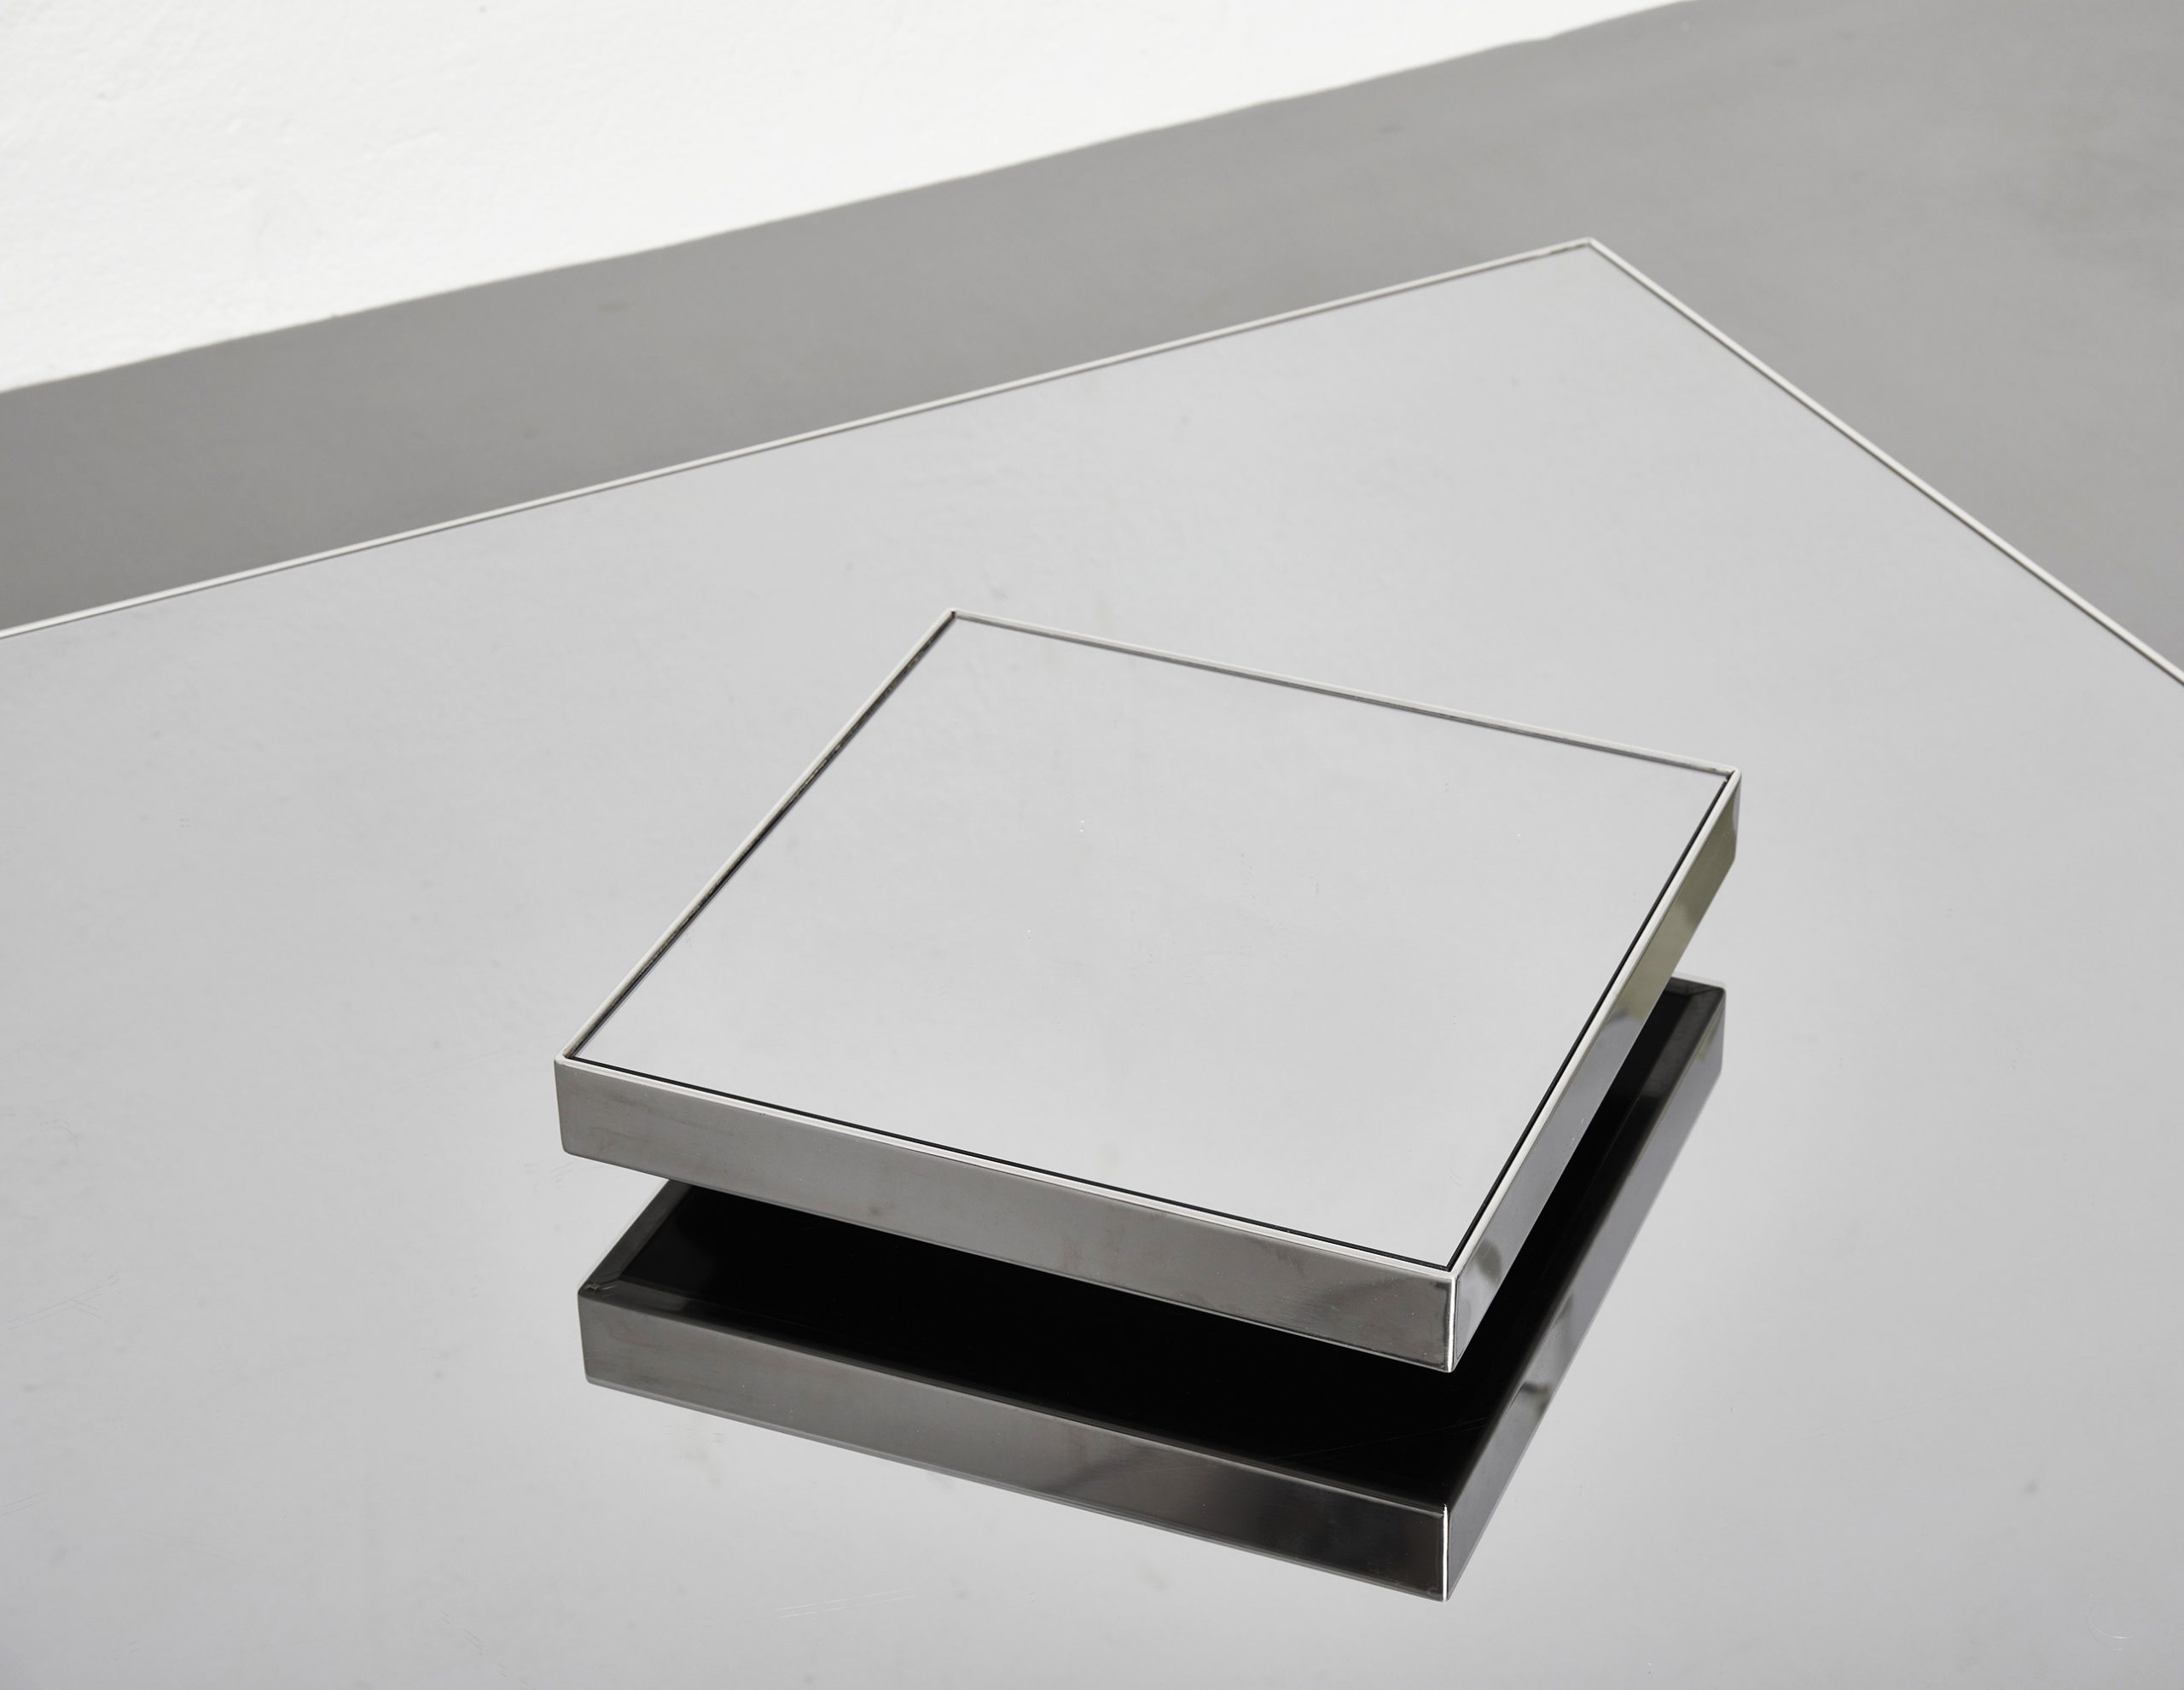 square-coffee-table-by-giovanni-ausenda-ny-form-1970-image-05